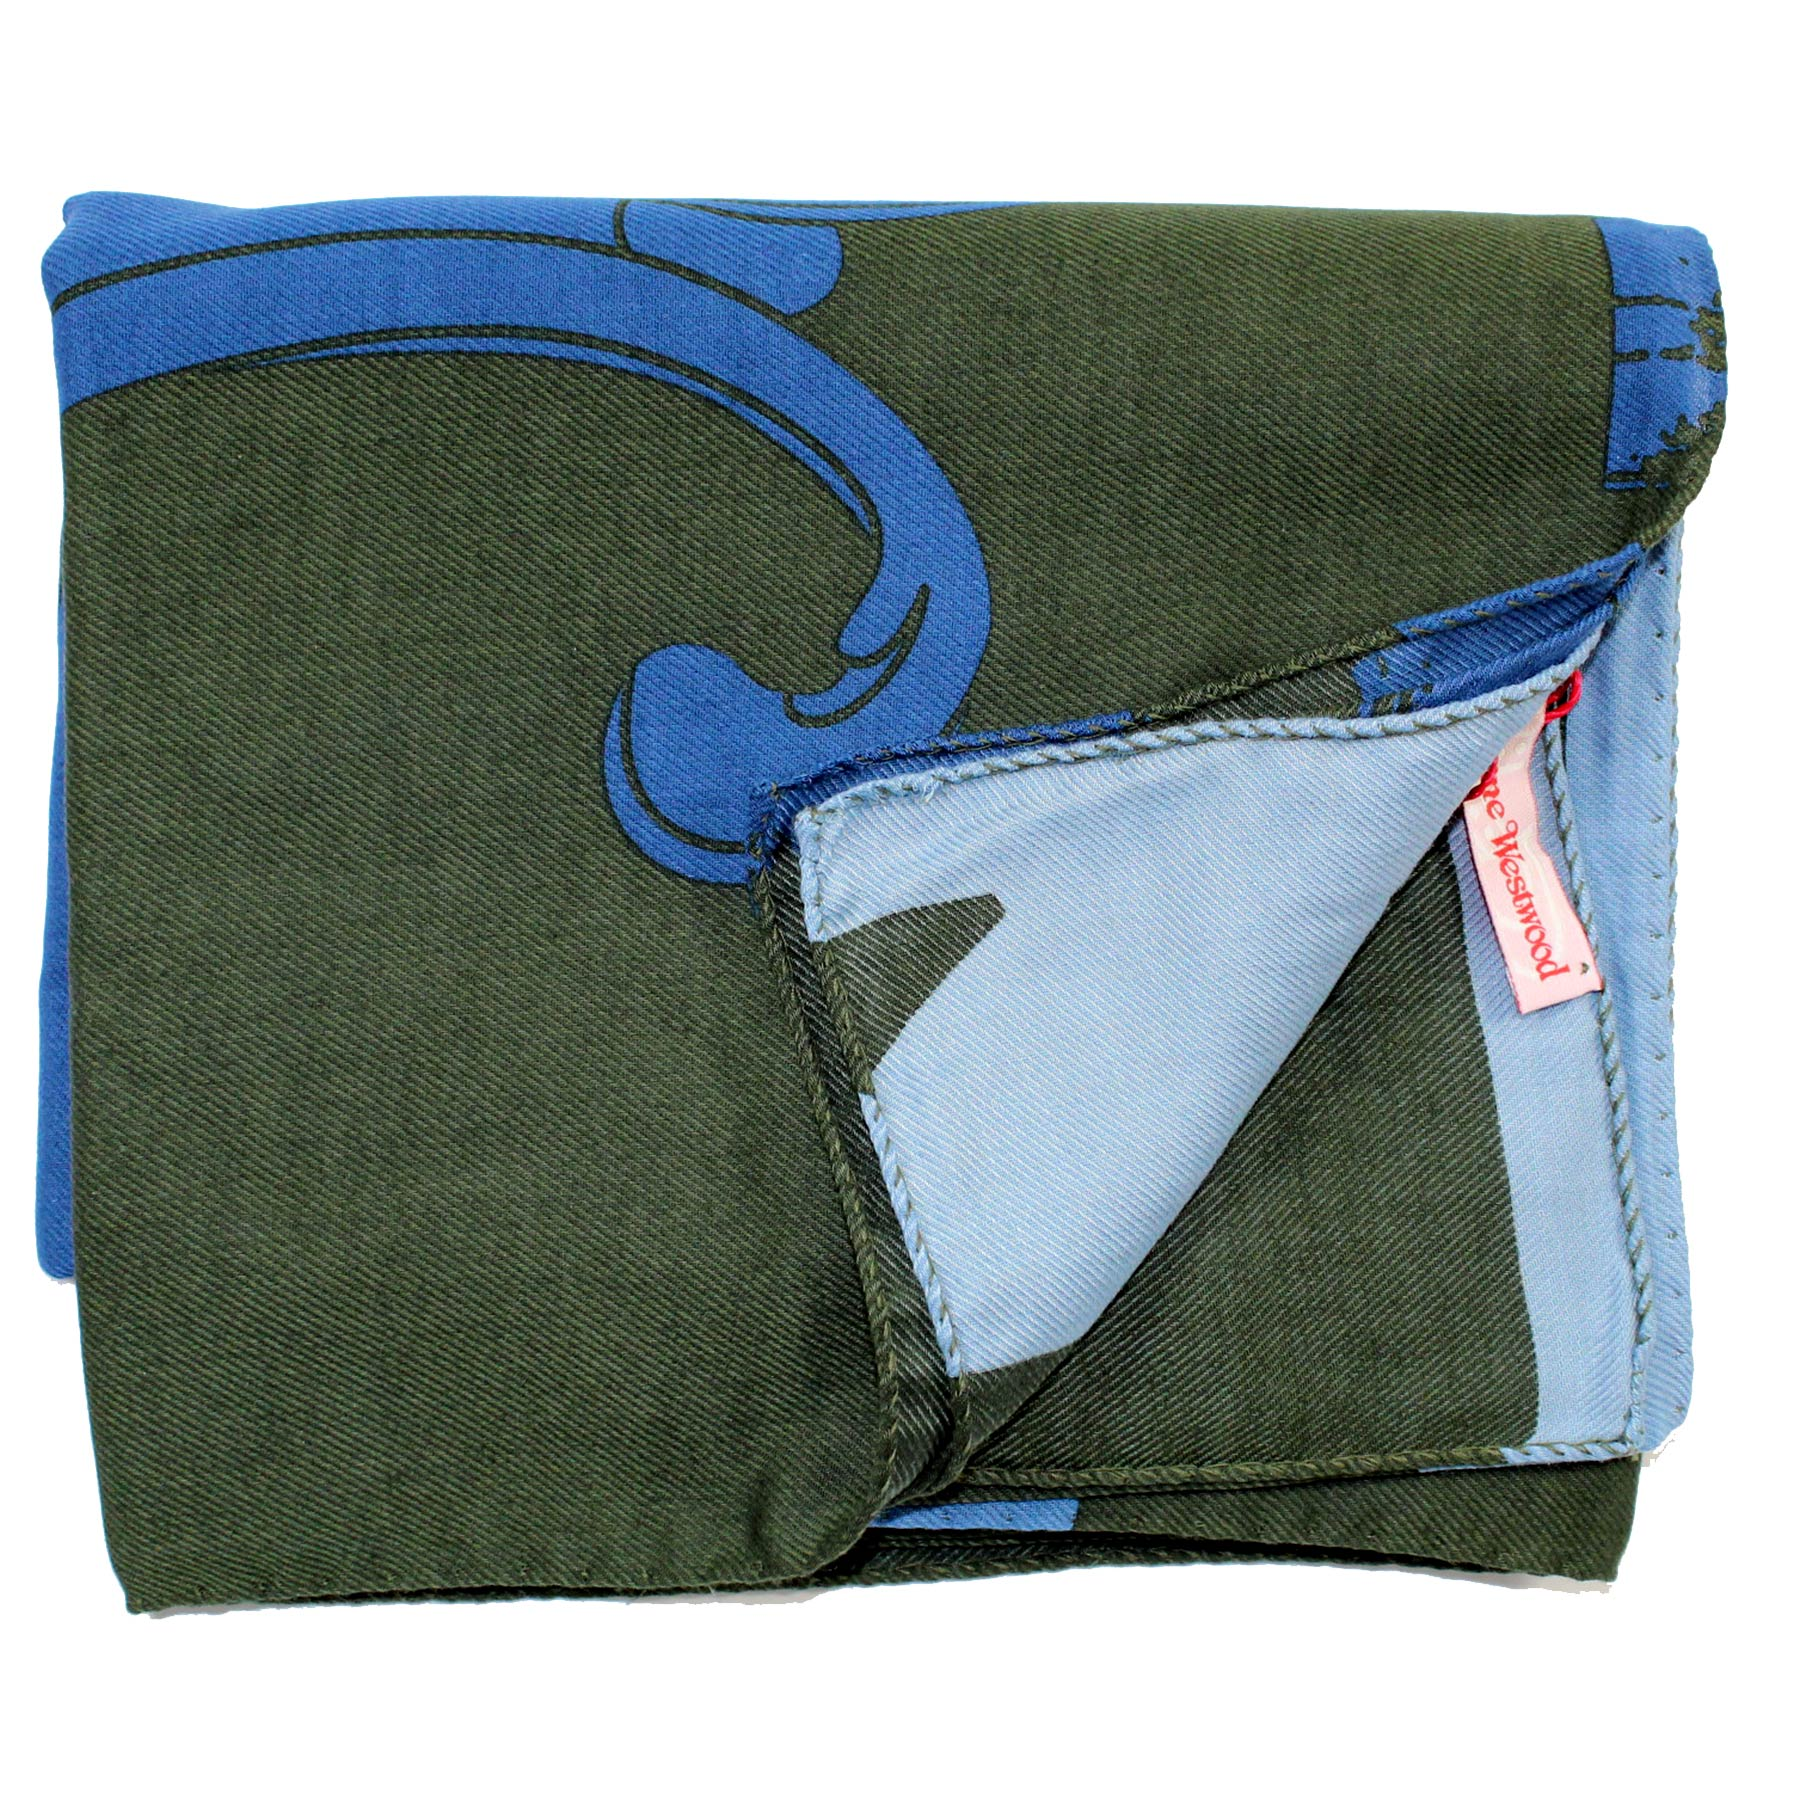 Vivienne Westwood Scarf Green Blue Extra Large Wrap